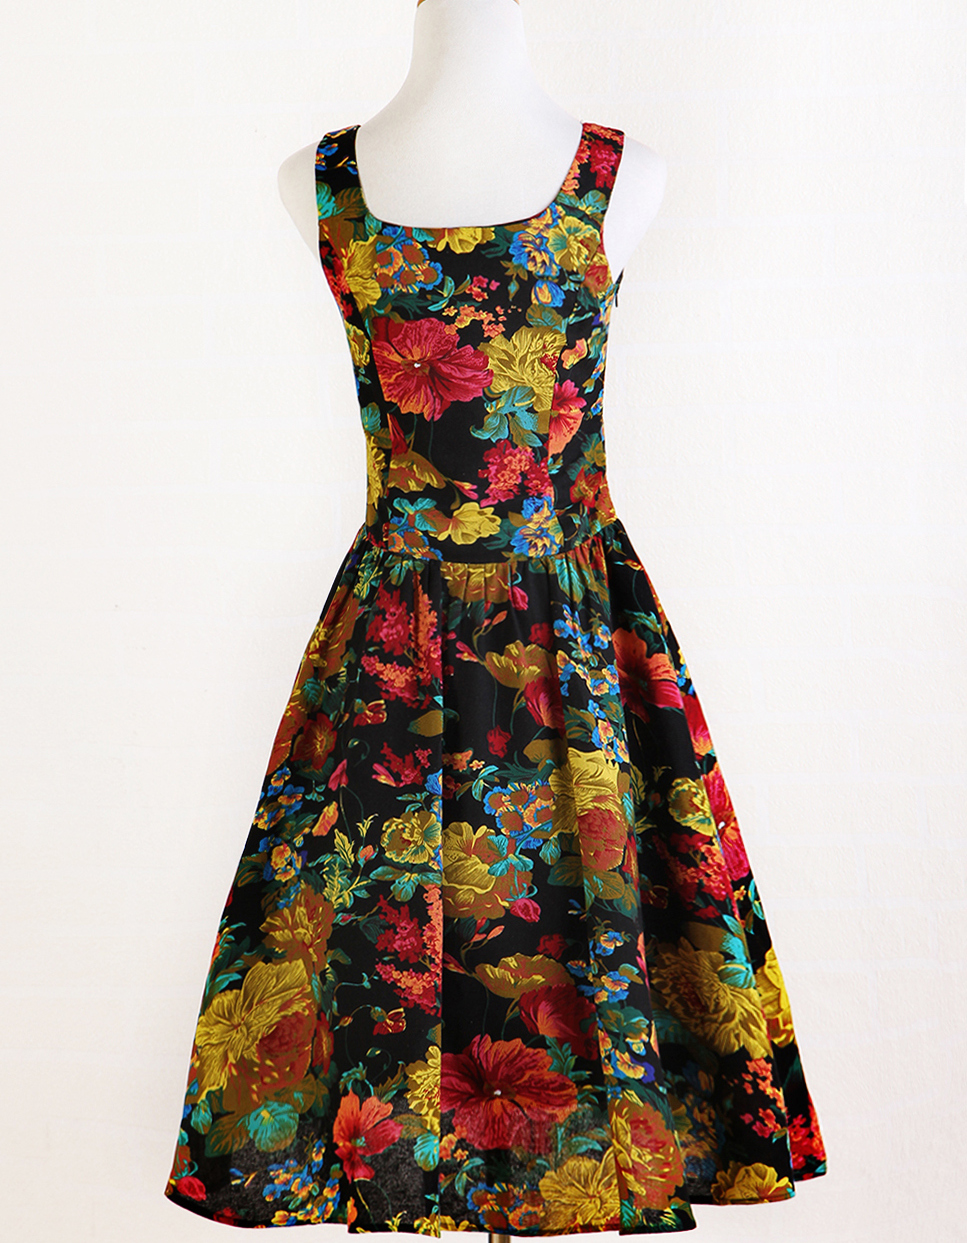 2017 spring New design <strong>vintage</strong> flower print american style women <strong>dress</strong>